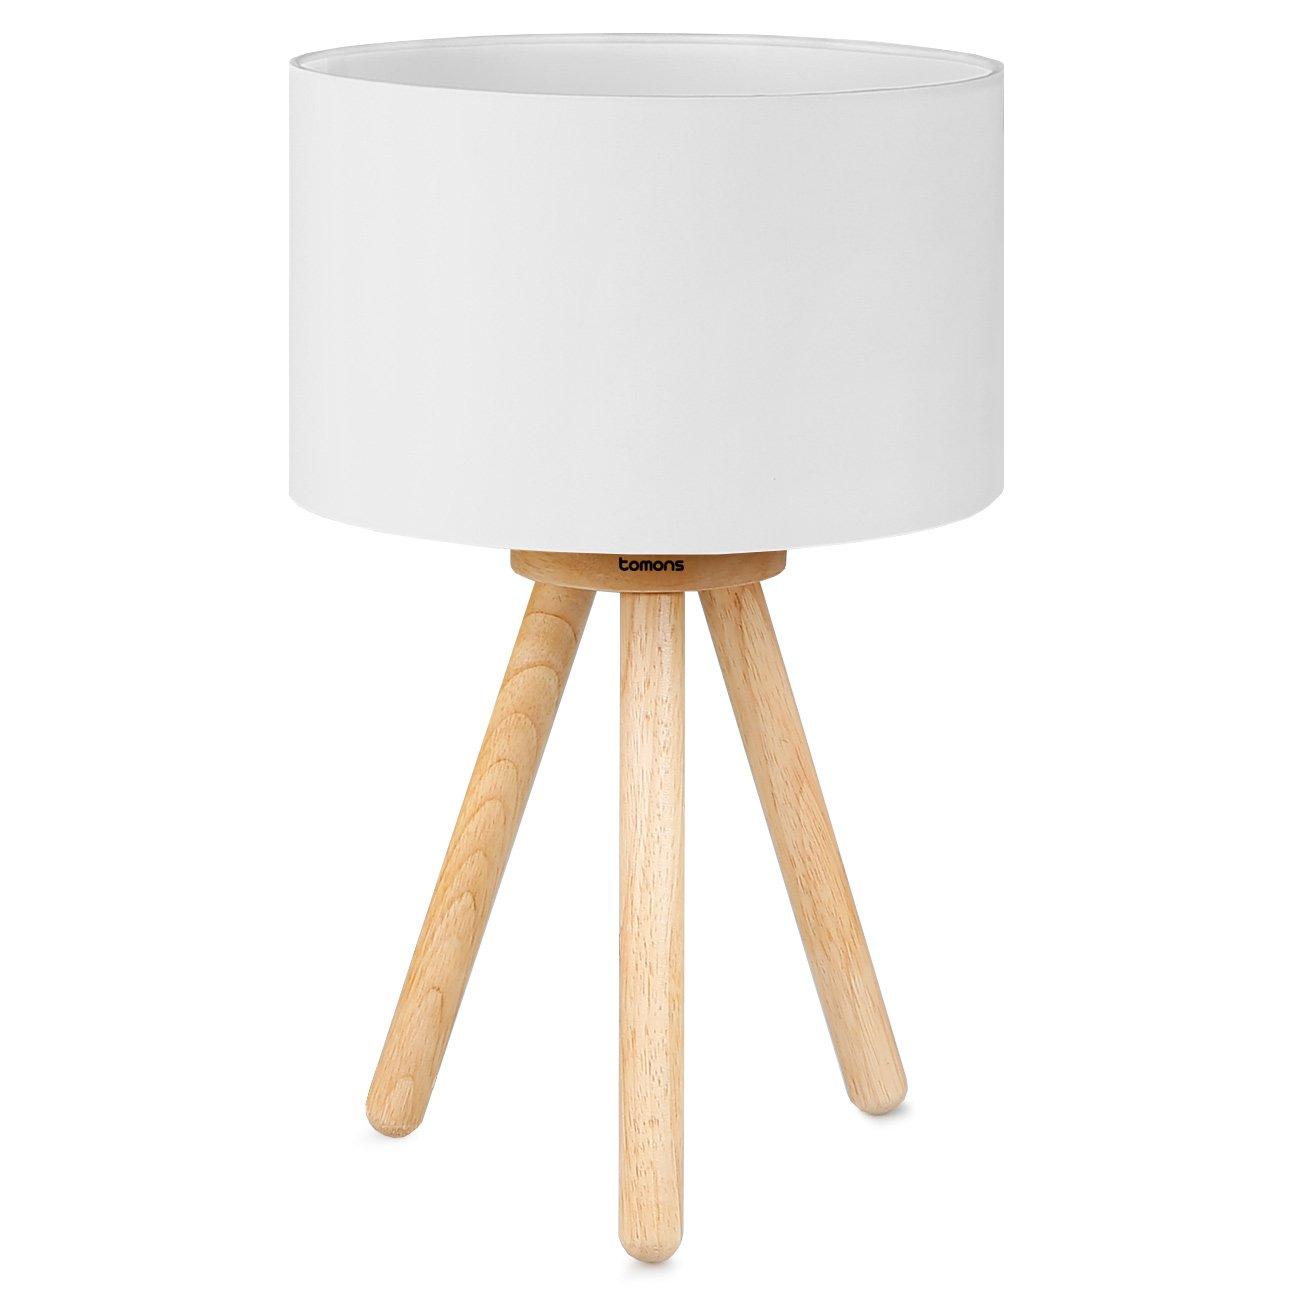 Tomons Wood Tripod Bedside Lamp, Simple Design with Soft Light for Bedroom Decorated in Warm and Cozy Ambience, Polyester White Fabric Lampshade, Packaged with 4W LED Bulb, Warm White Light, 39cm High